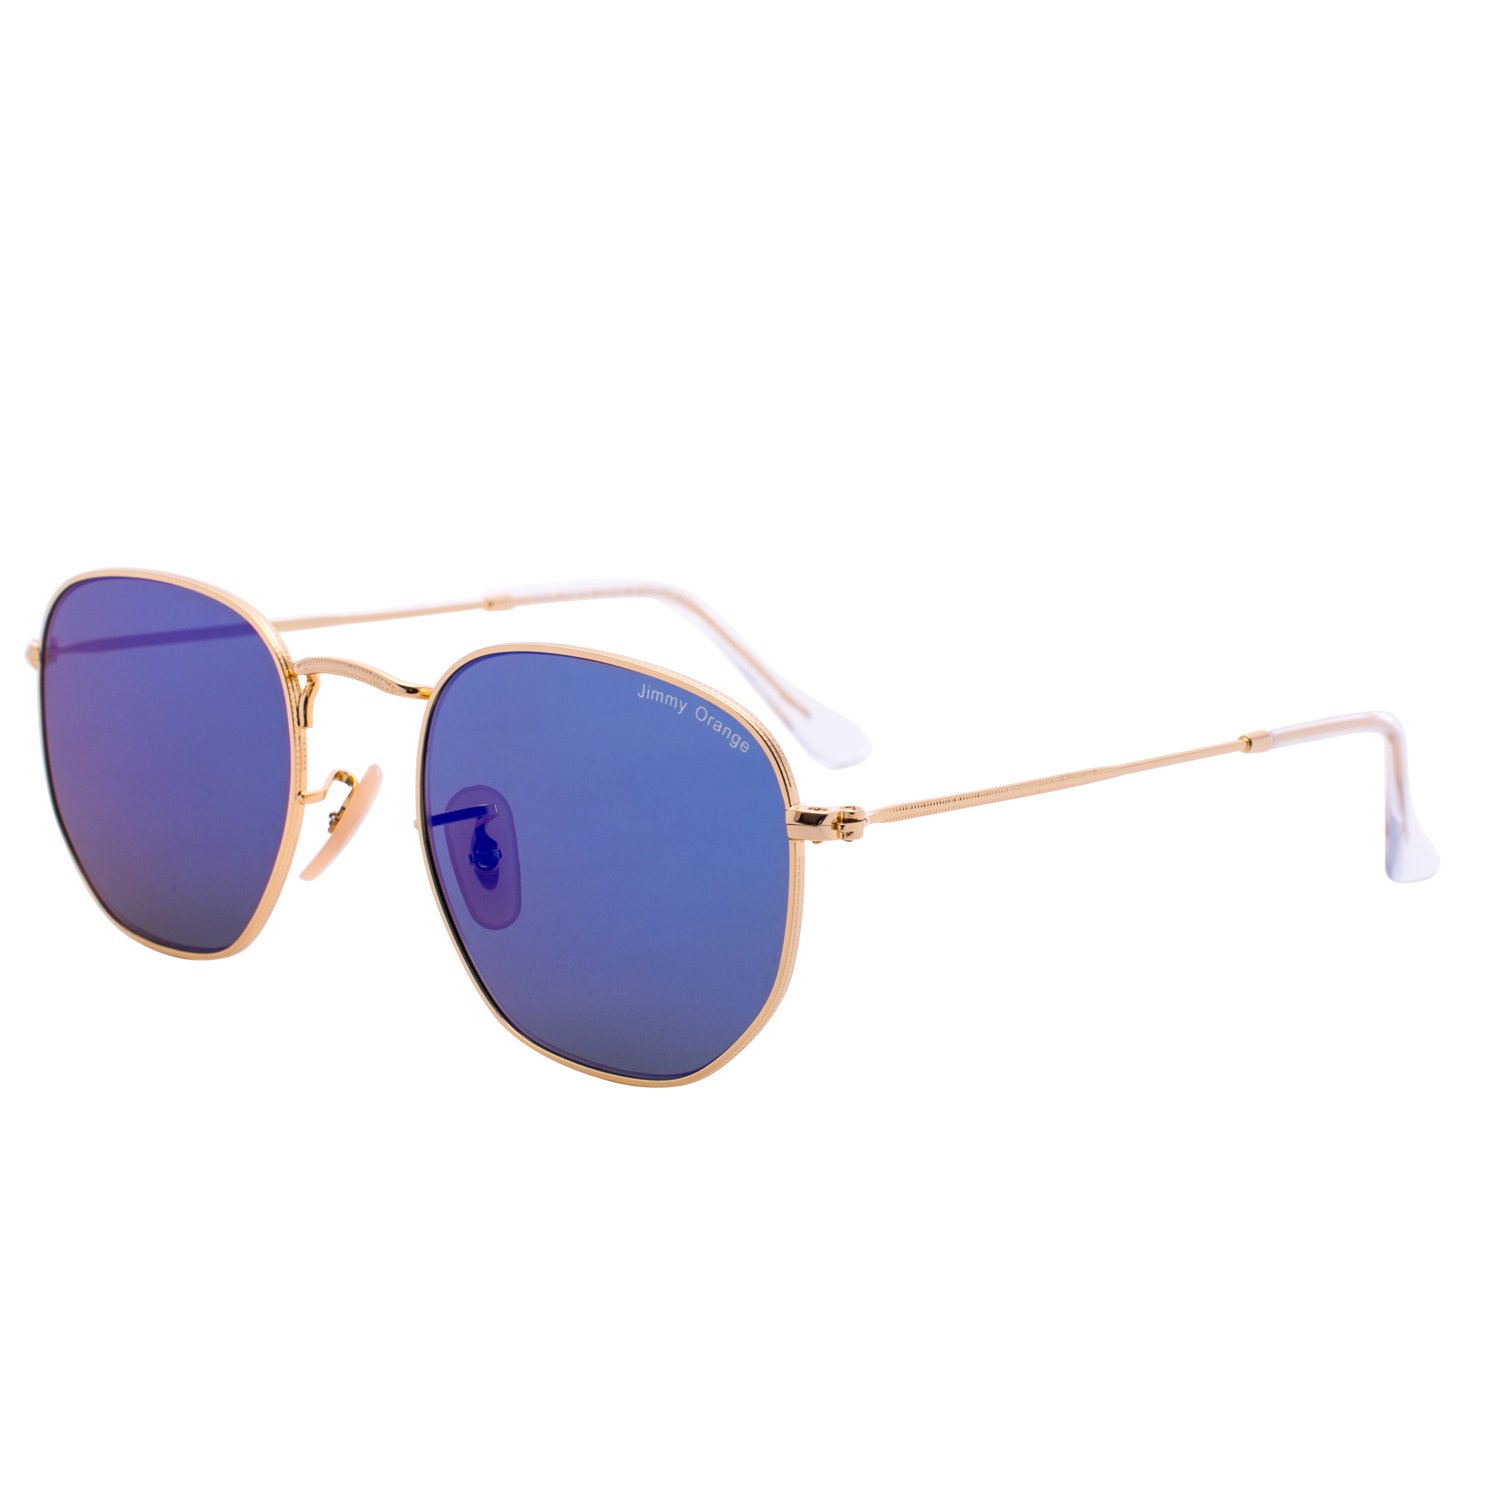 a5eb33a150 Amazon.com  JO Metal Womens Mens Round Designer UV Protection Glasses  Mirrored Lens Sunglasses J7233 blue  Clothing